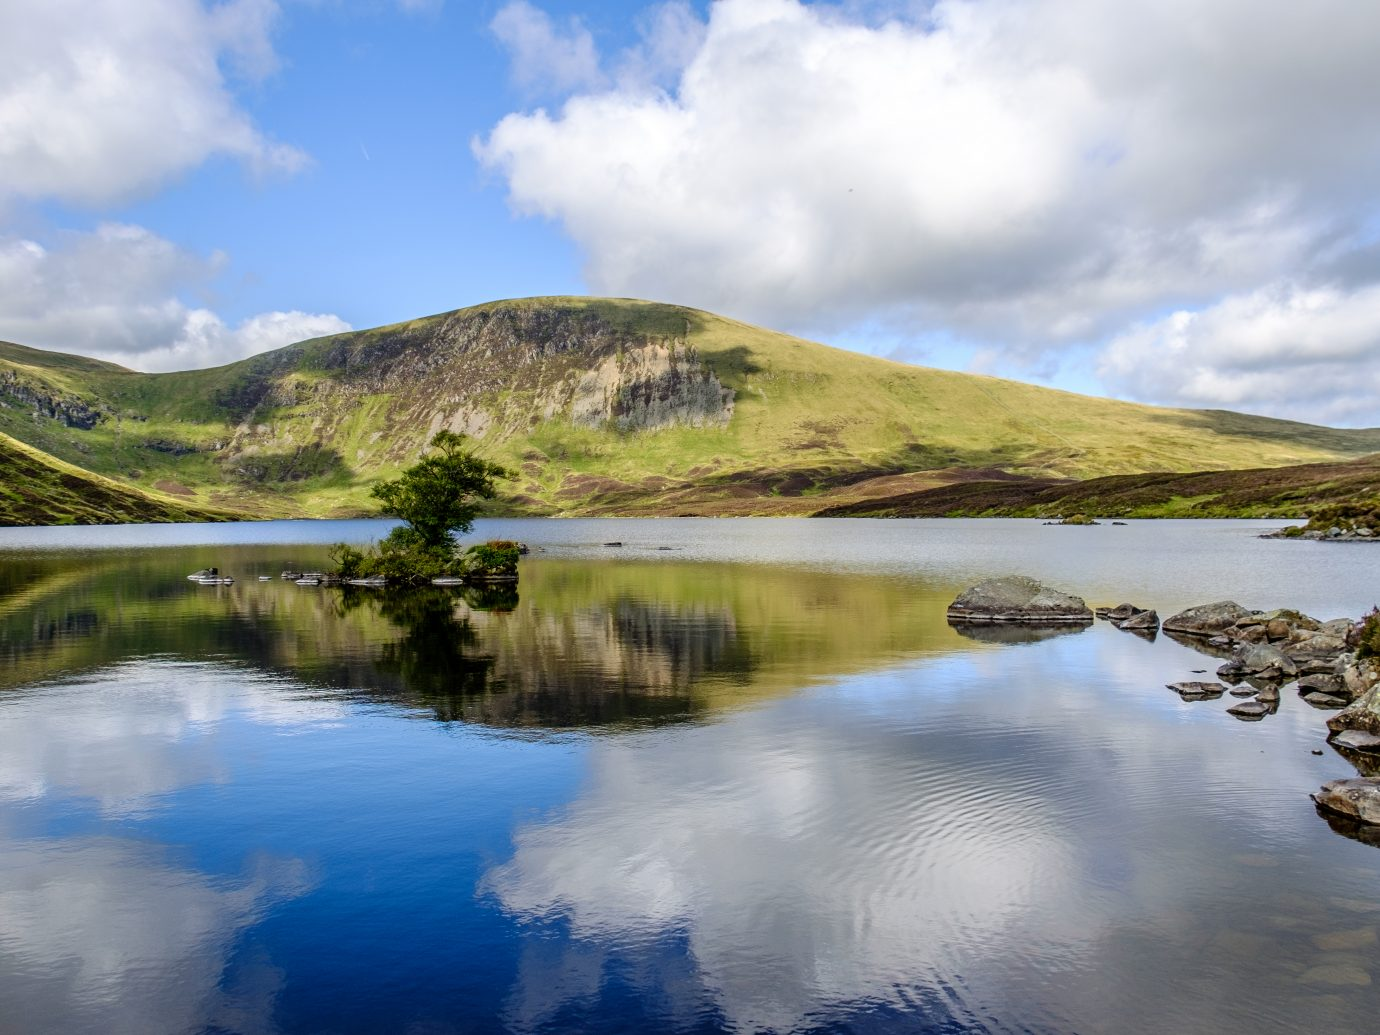 Loch Skeen , a lake located in southern Scotland in Dumfries and Galloway